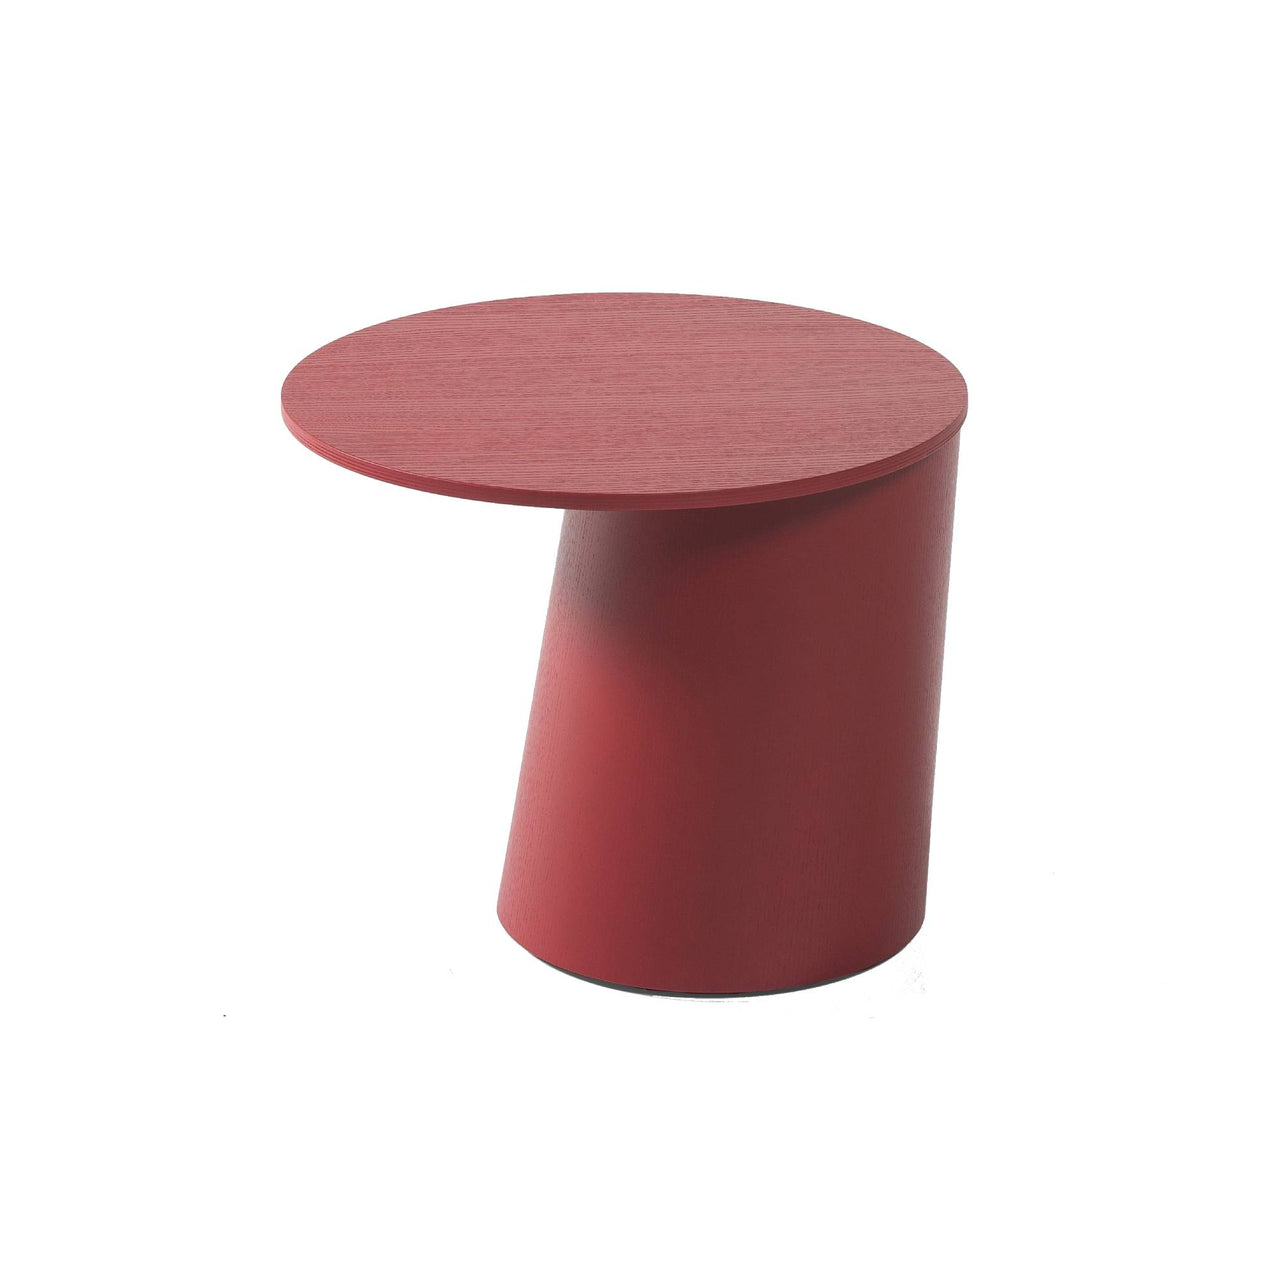 Ahoy Table: Soft Red